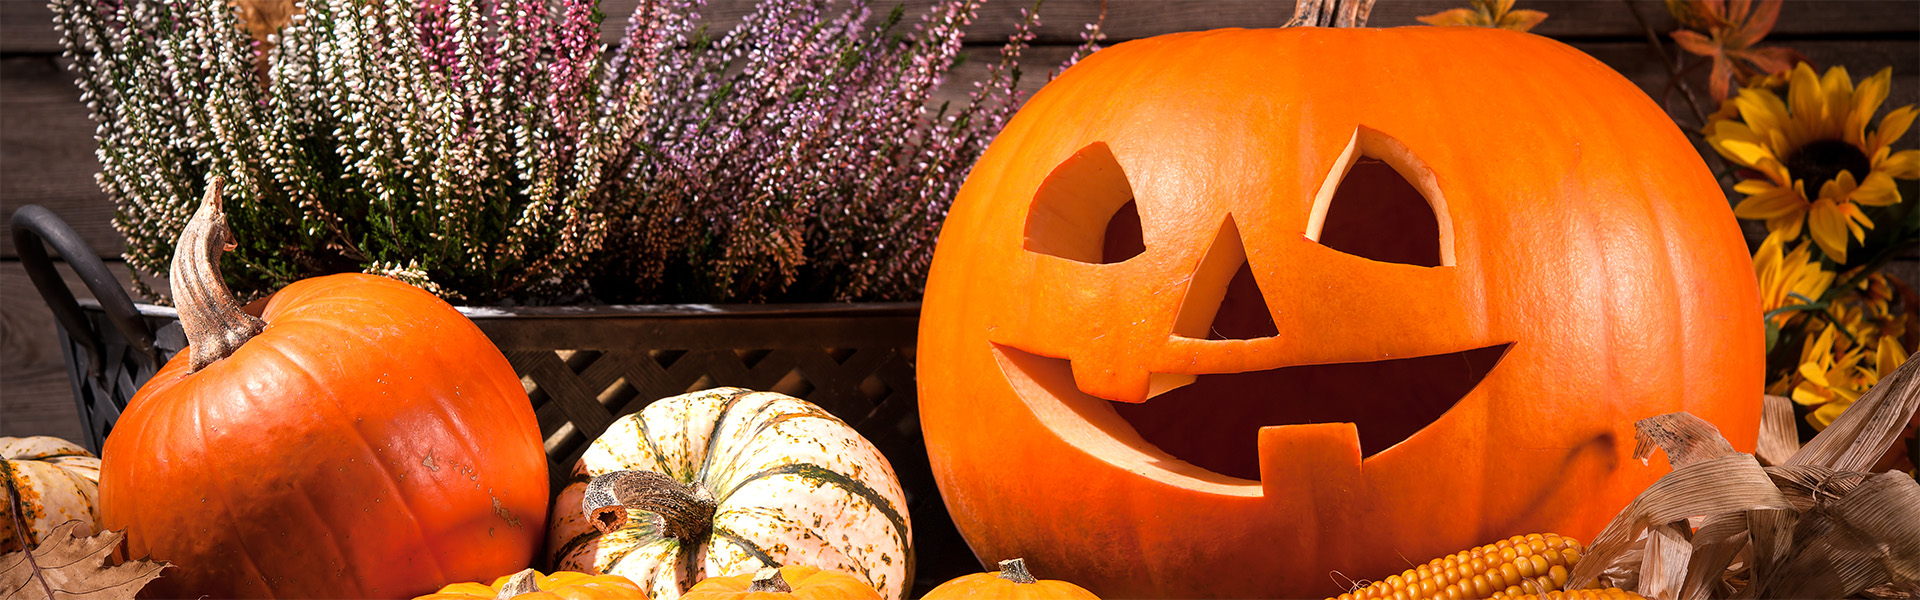 """<p data-aos=fade-up style=""""text-align:center""""><strong>Pumpkins Festival Úvalno</strong></p>"""